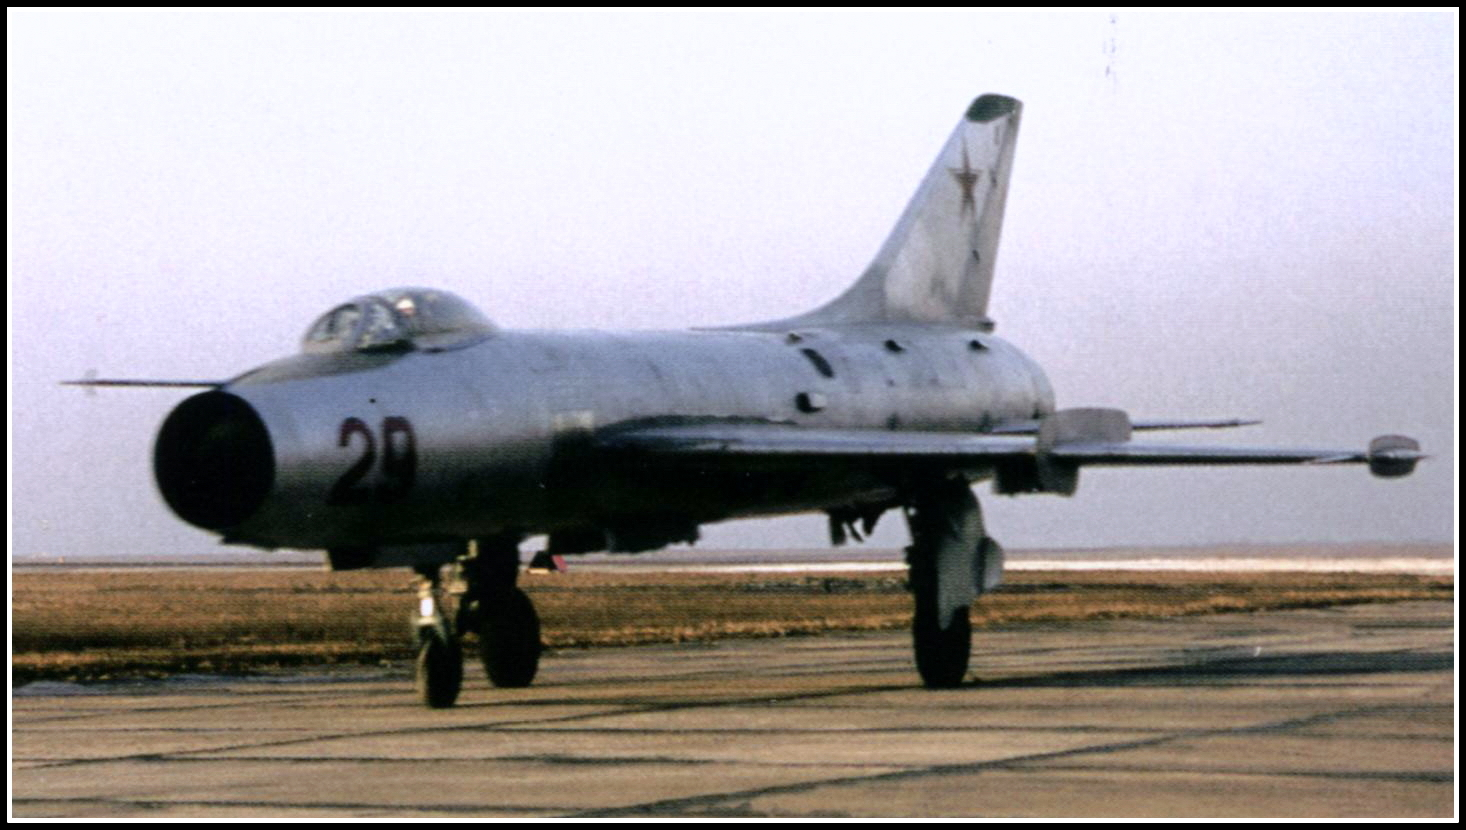 Alfa img showing gt sukhoi su 7